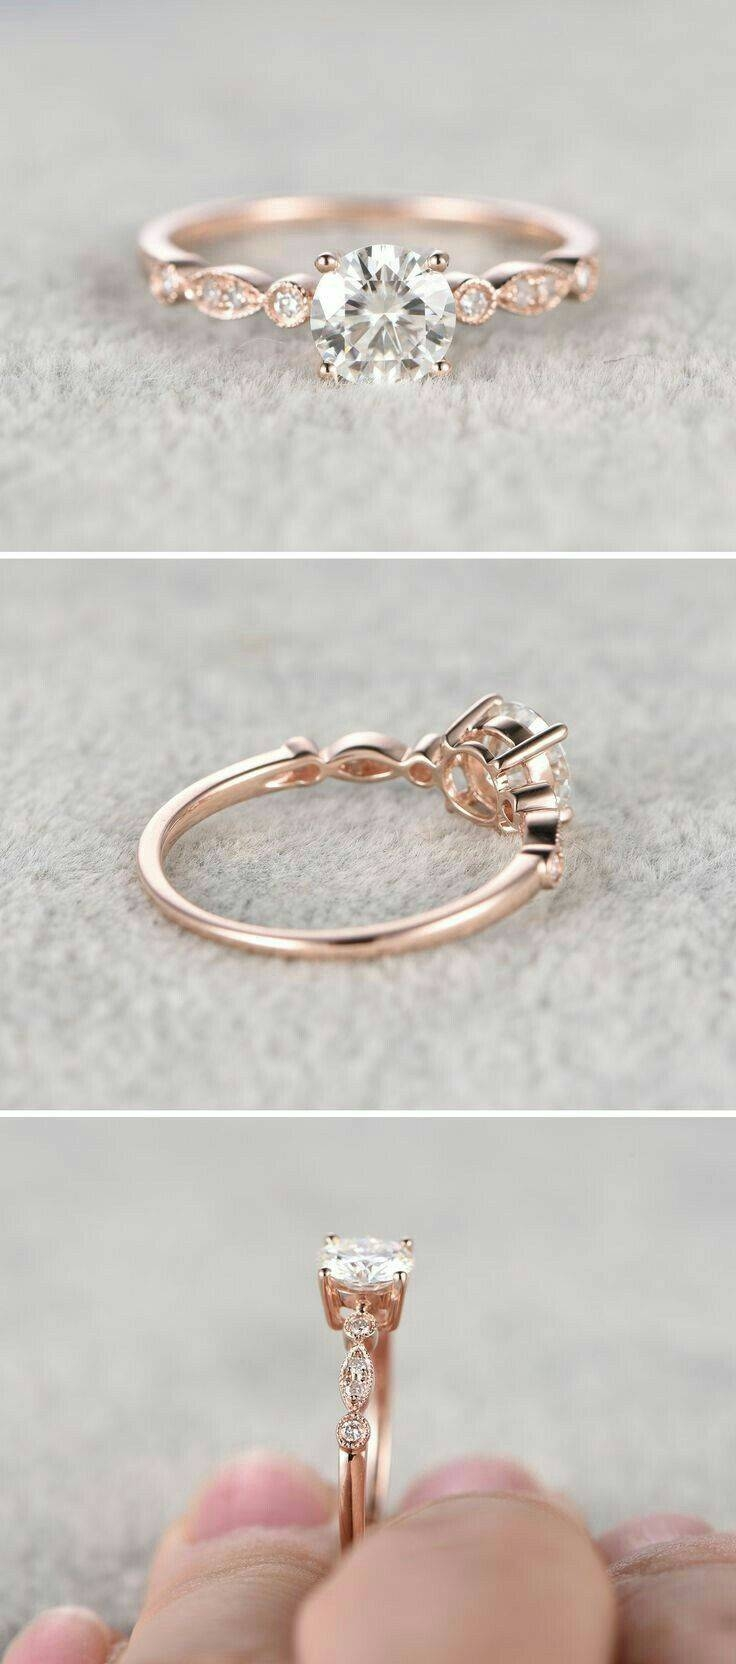 Ring Huge Wedding Ring Wedding Ring With Name Engraved Etsy In Wedding Rings With Name Engraved (View 12 of 15)